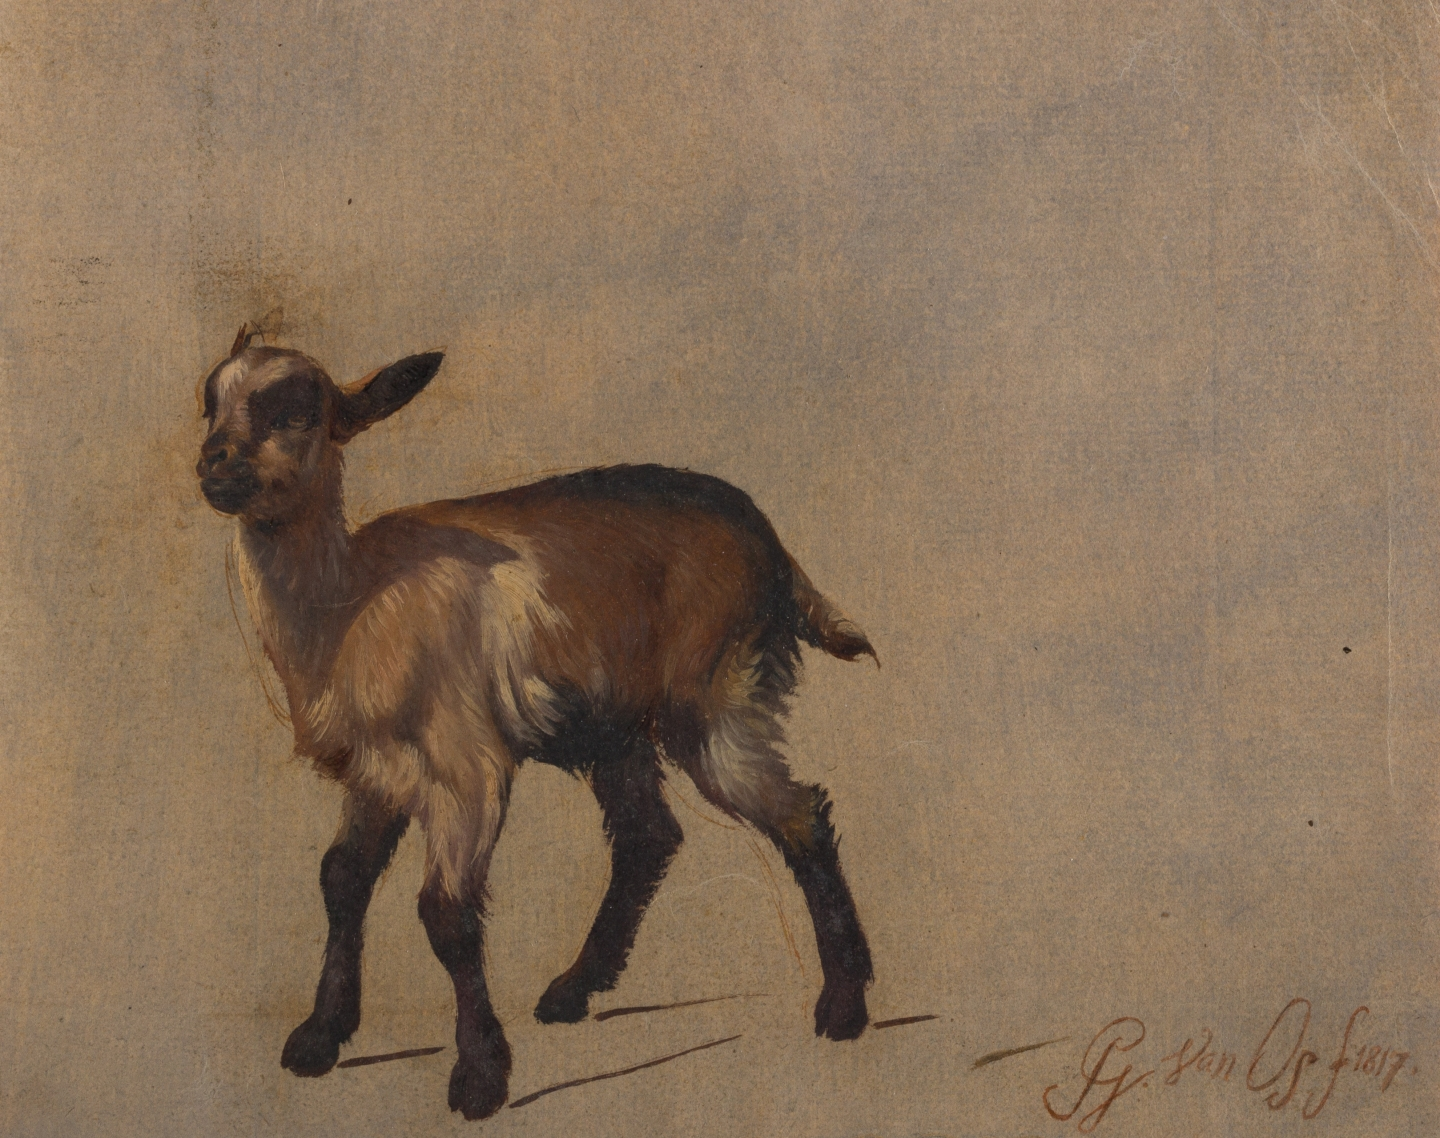 Pieter Gerardus van Os (The Hague 1776-1839 The Hague) Studies of young goats